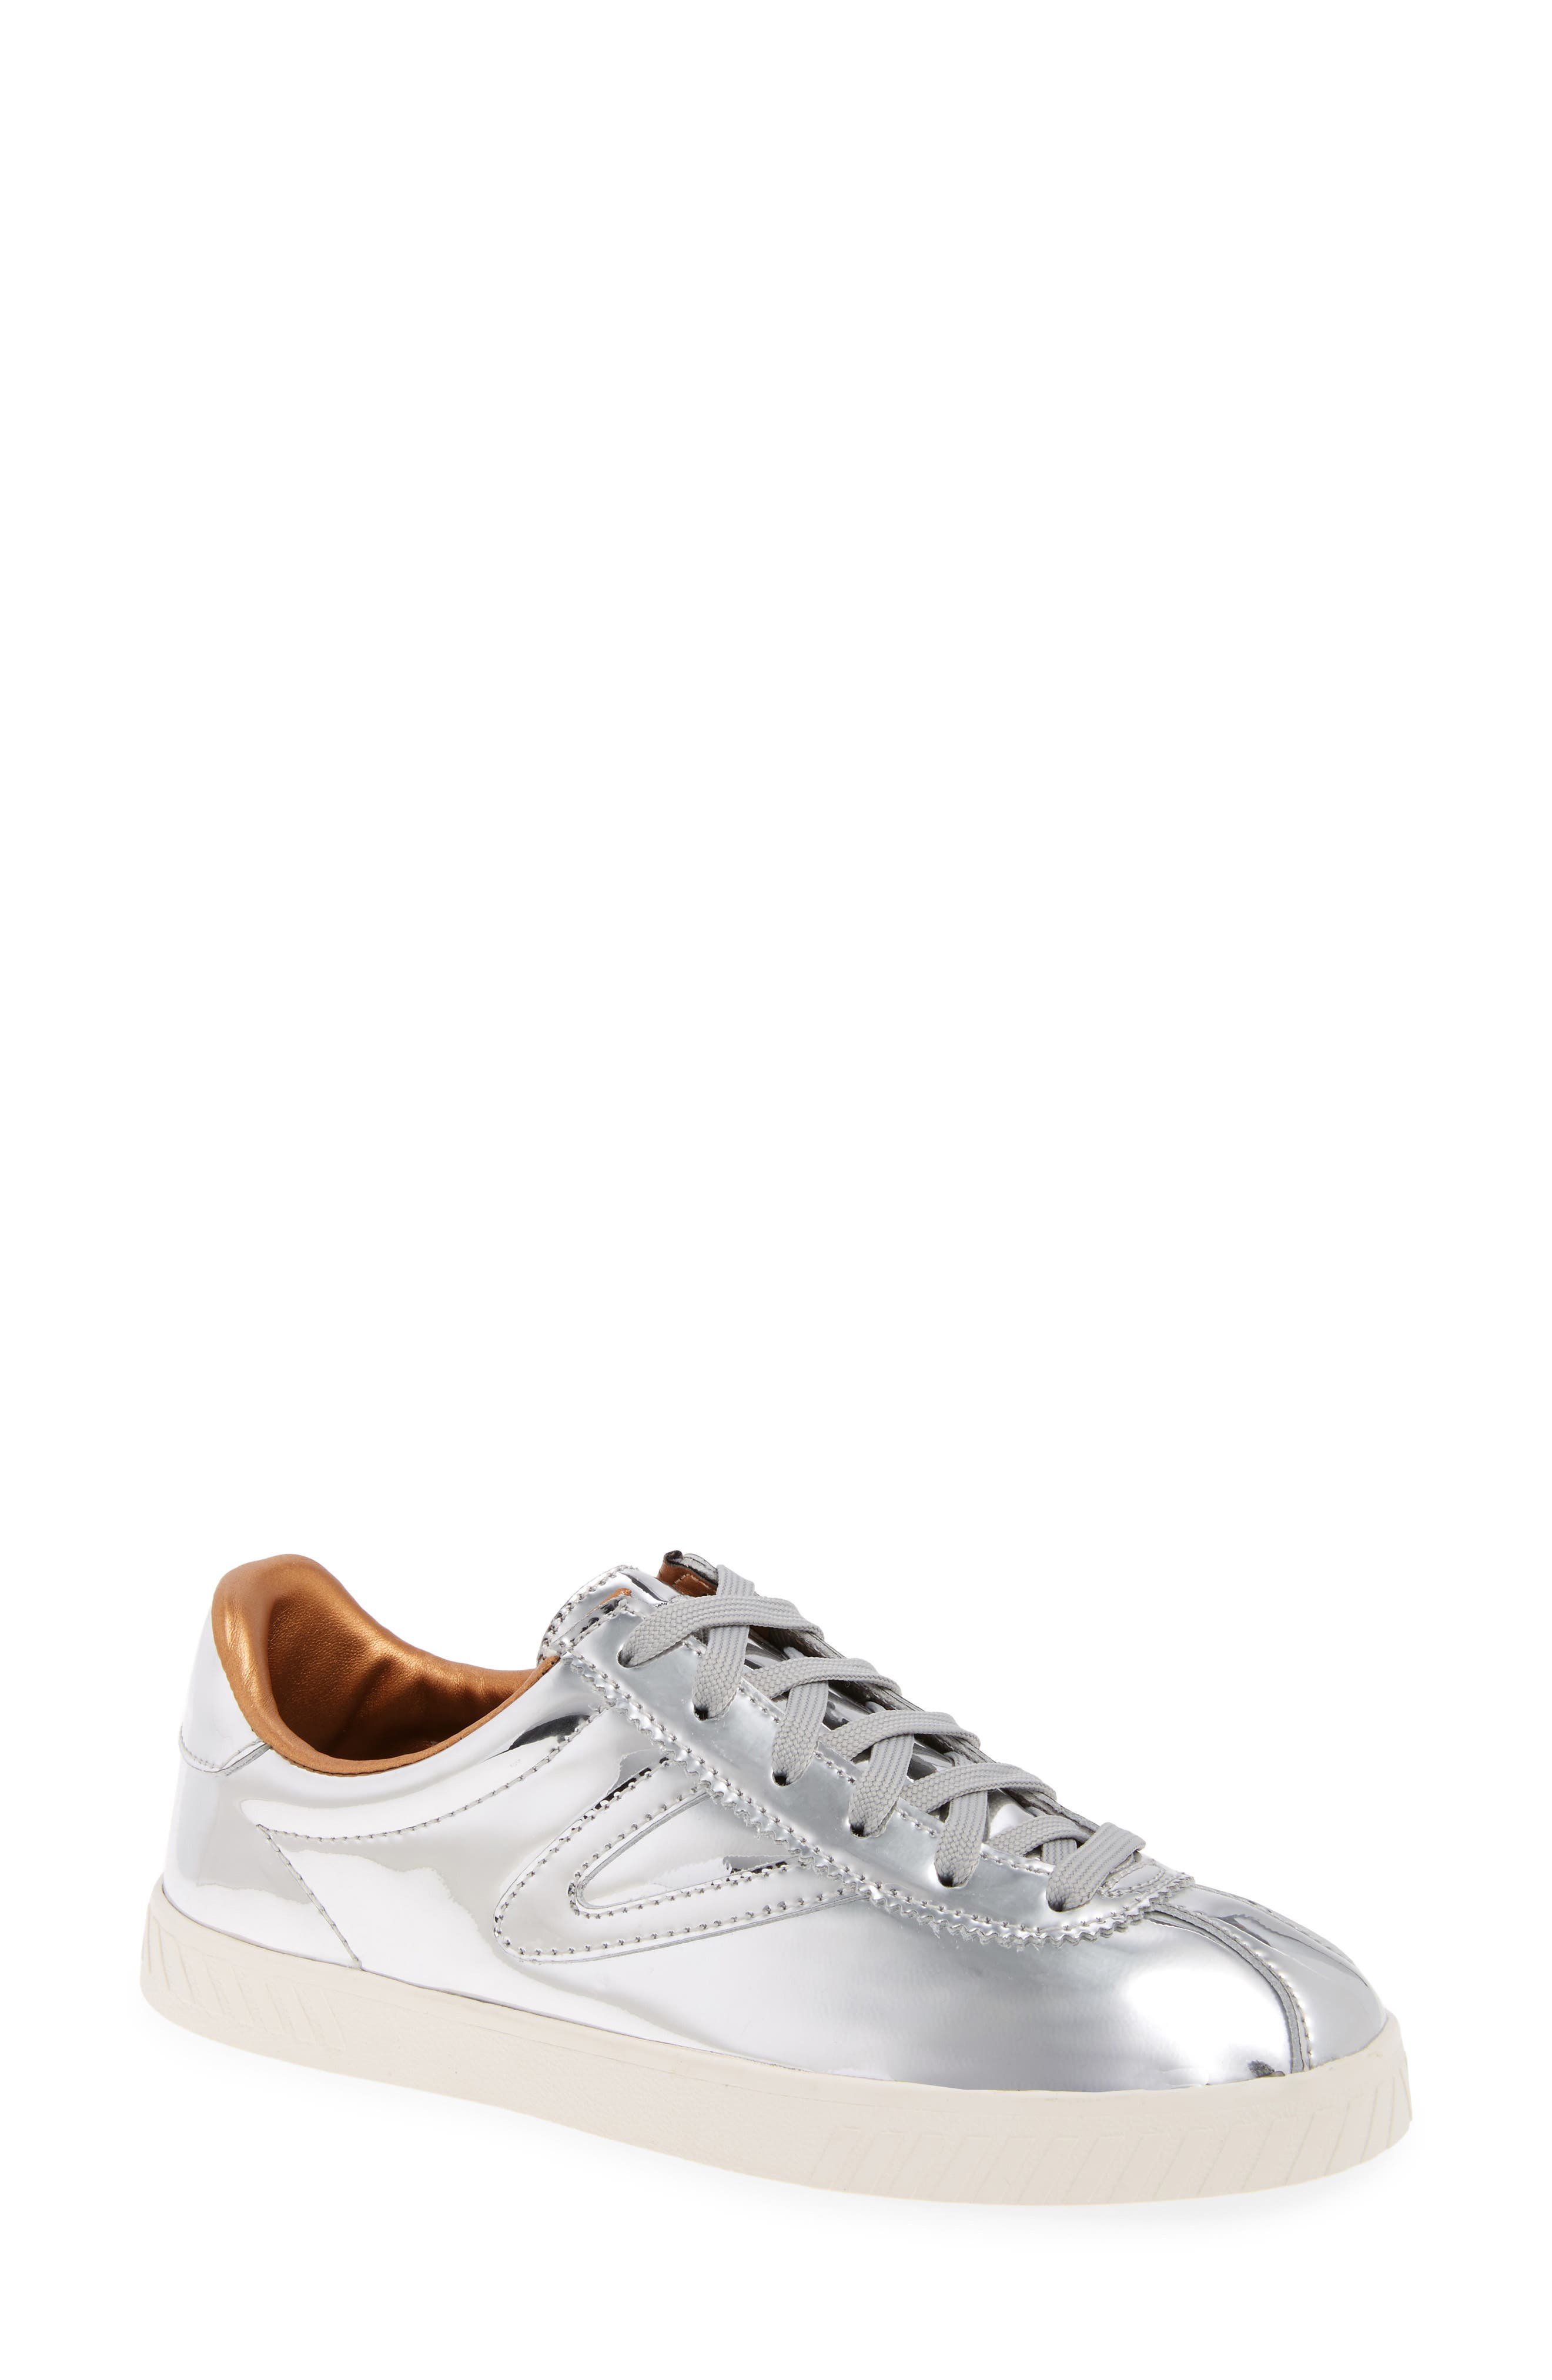 Camden 2 Sneaker, Main, color, 040